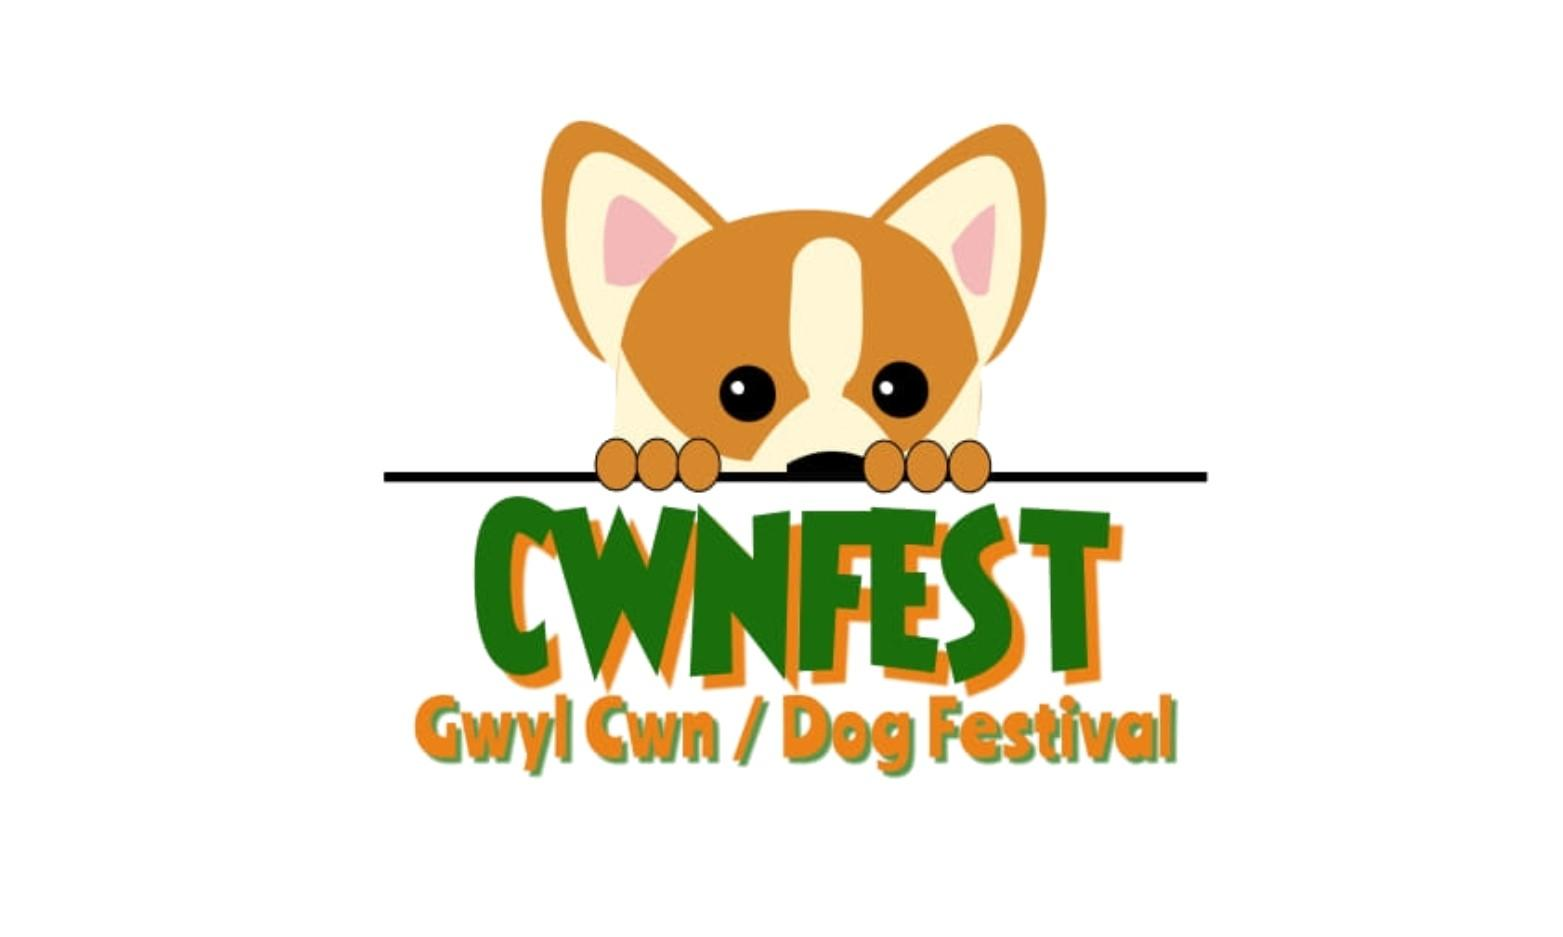 CWNFEST Doggy Festival